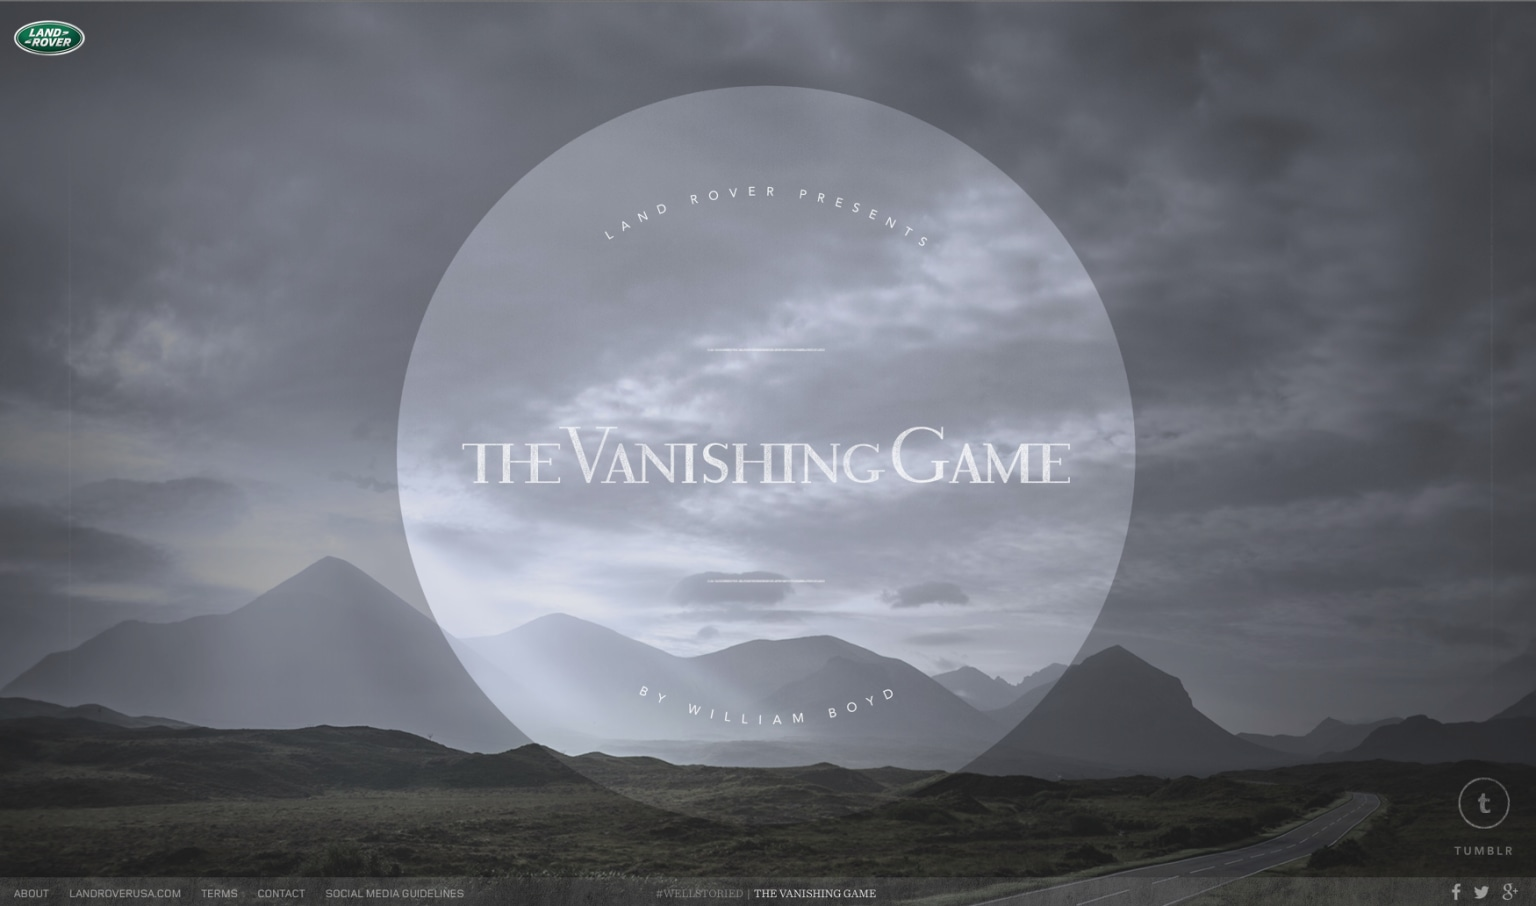 Land Rover /The Vanishing Game